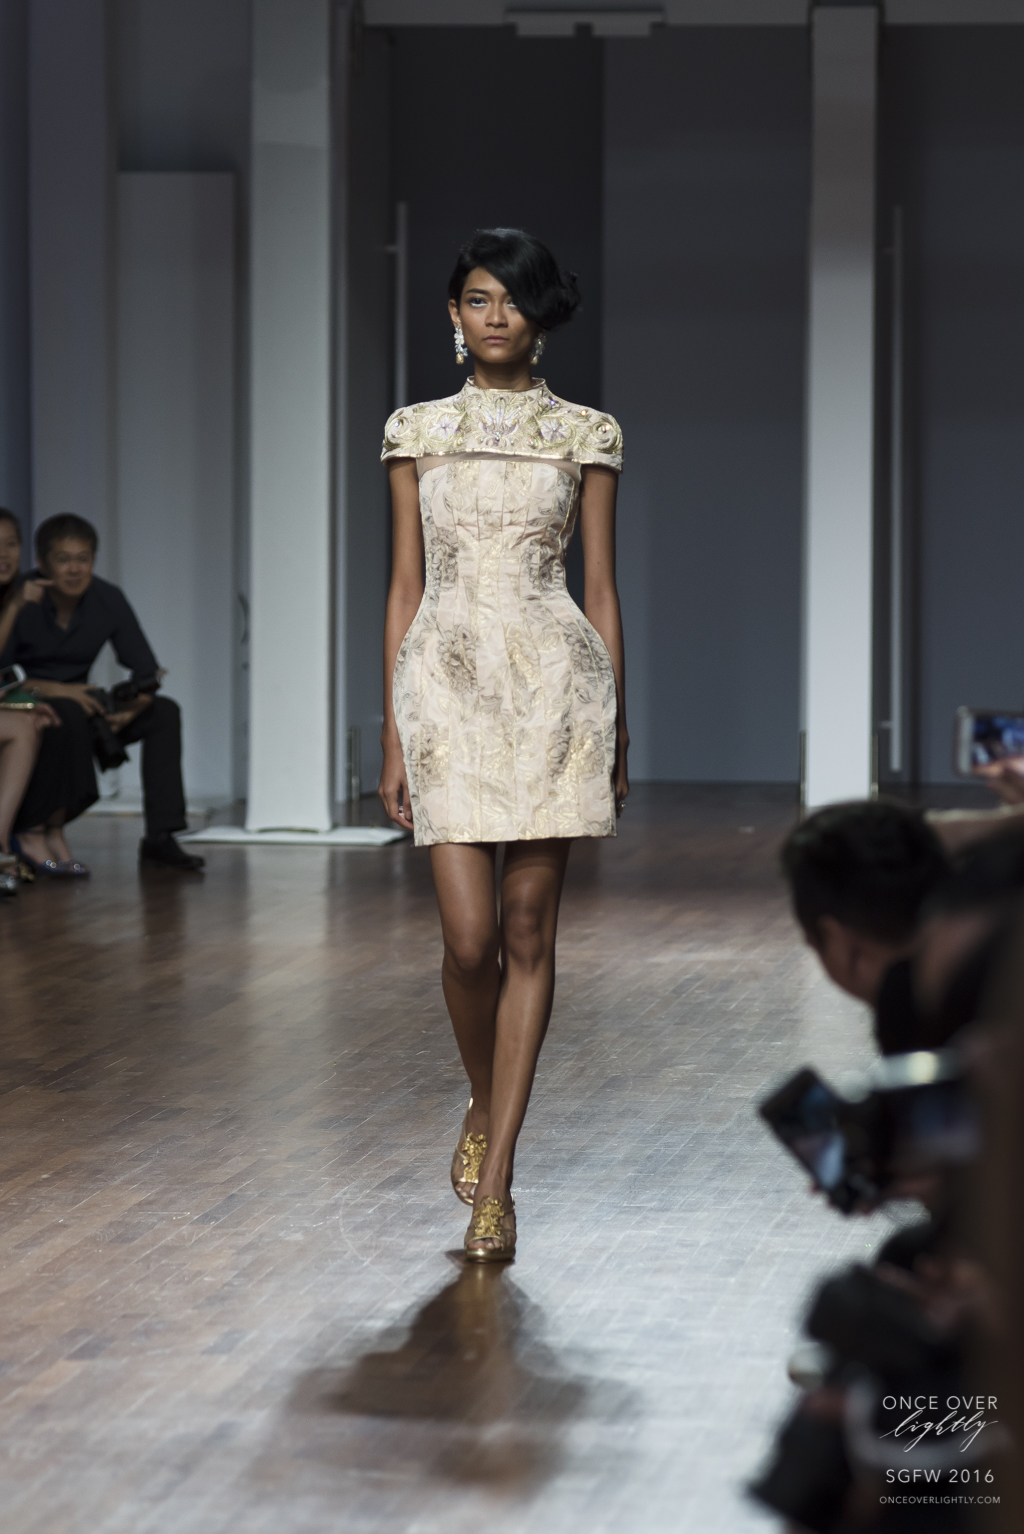 onceoverlightly guo pei sgfw 2016